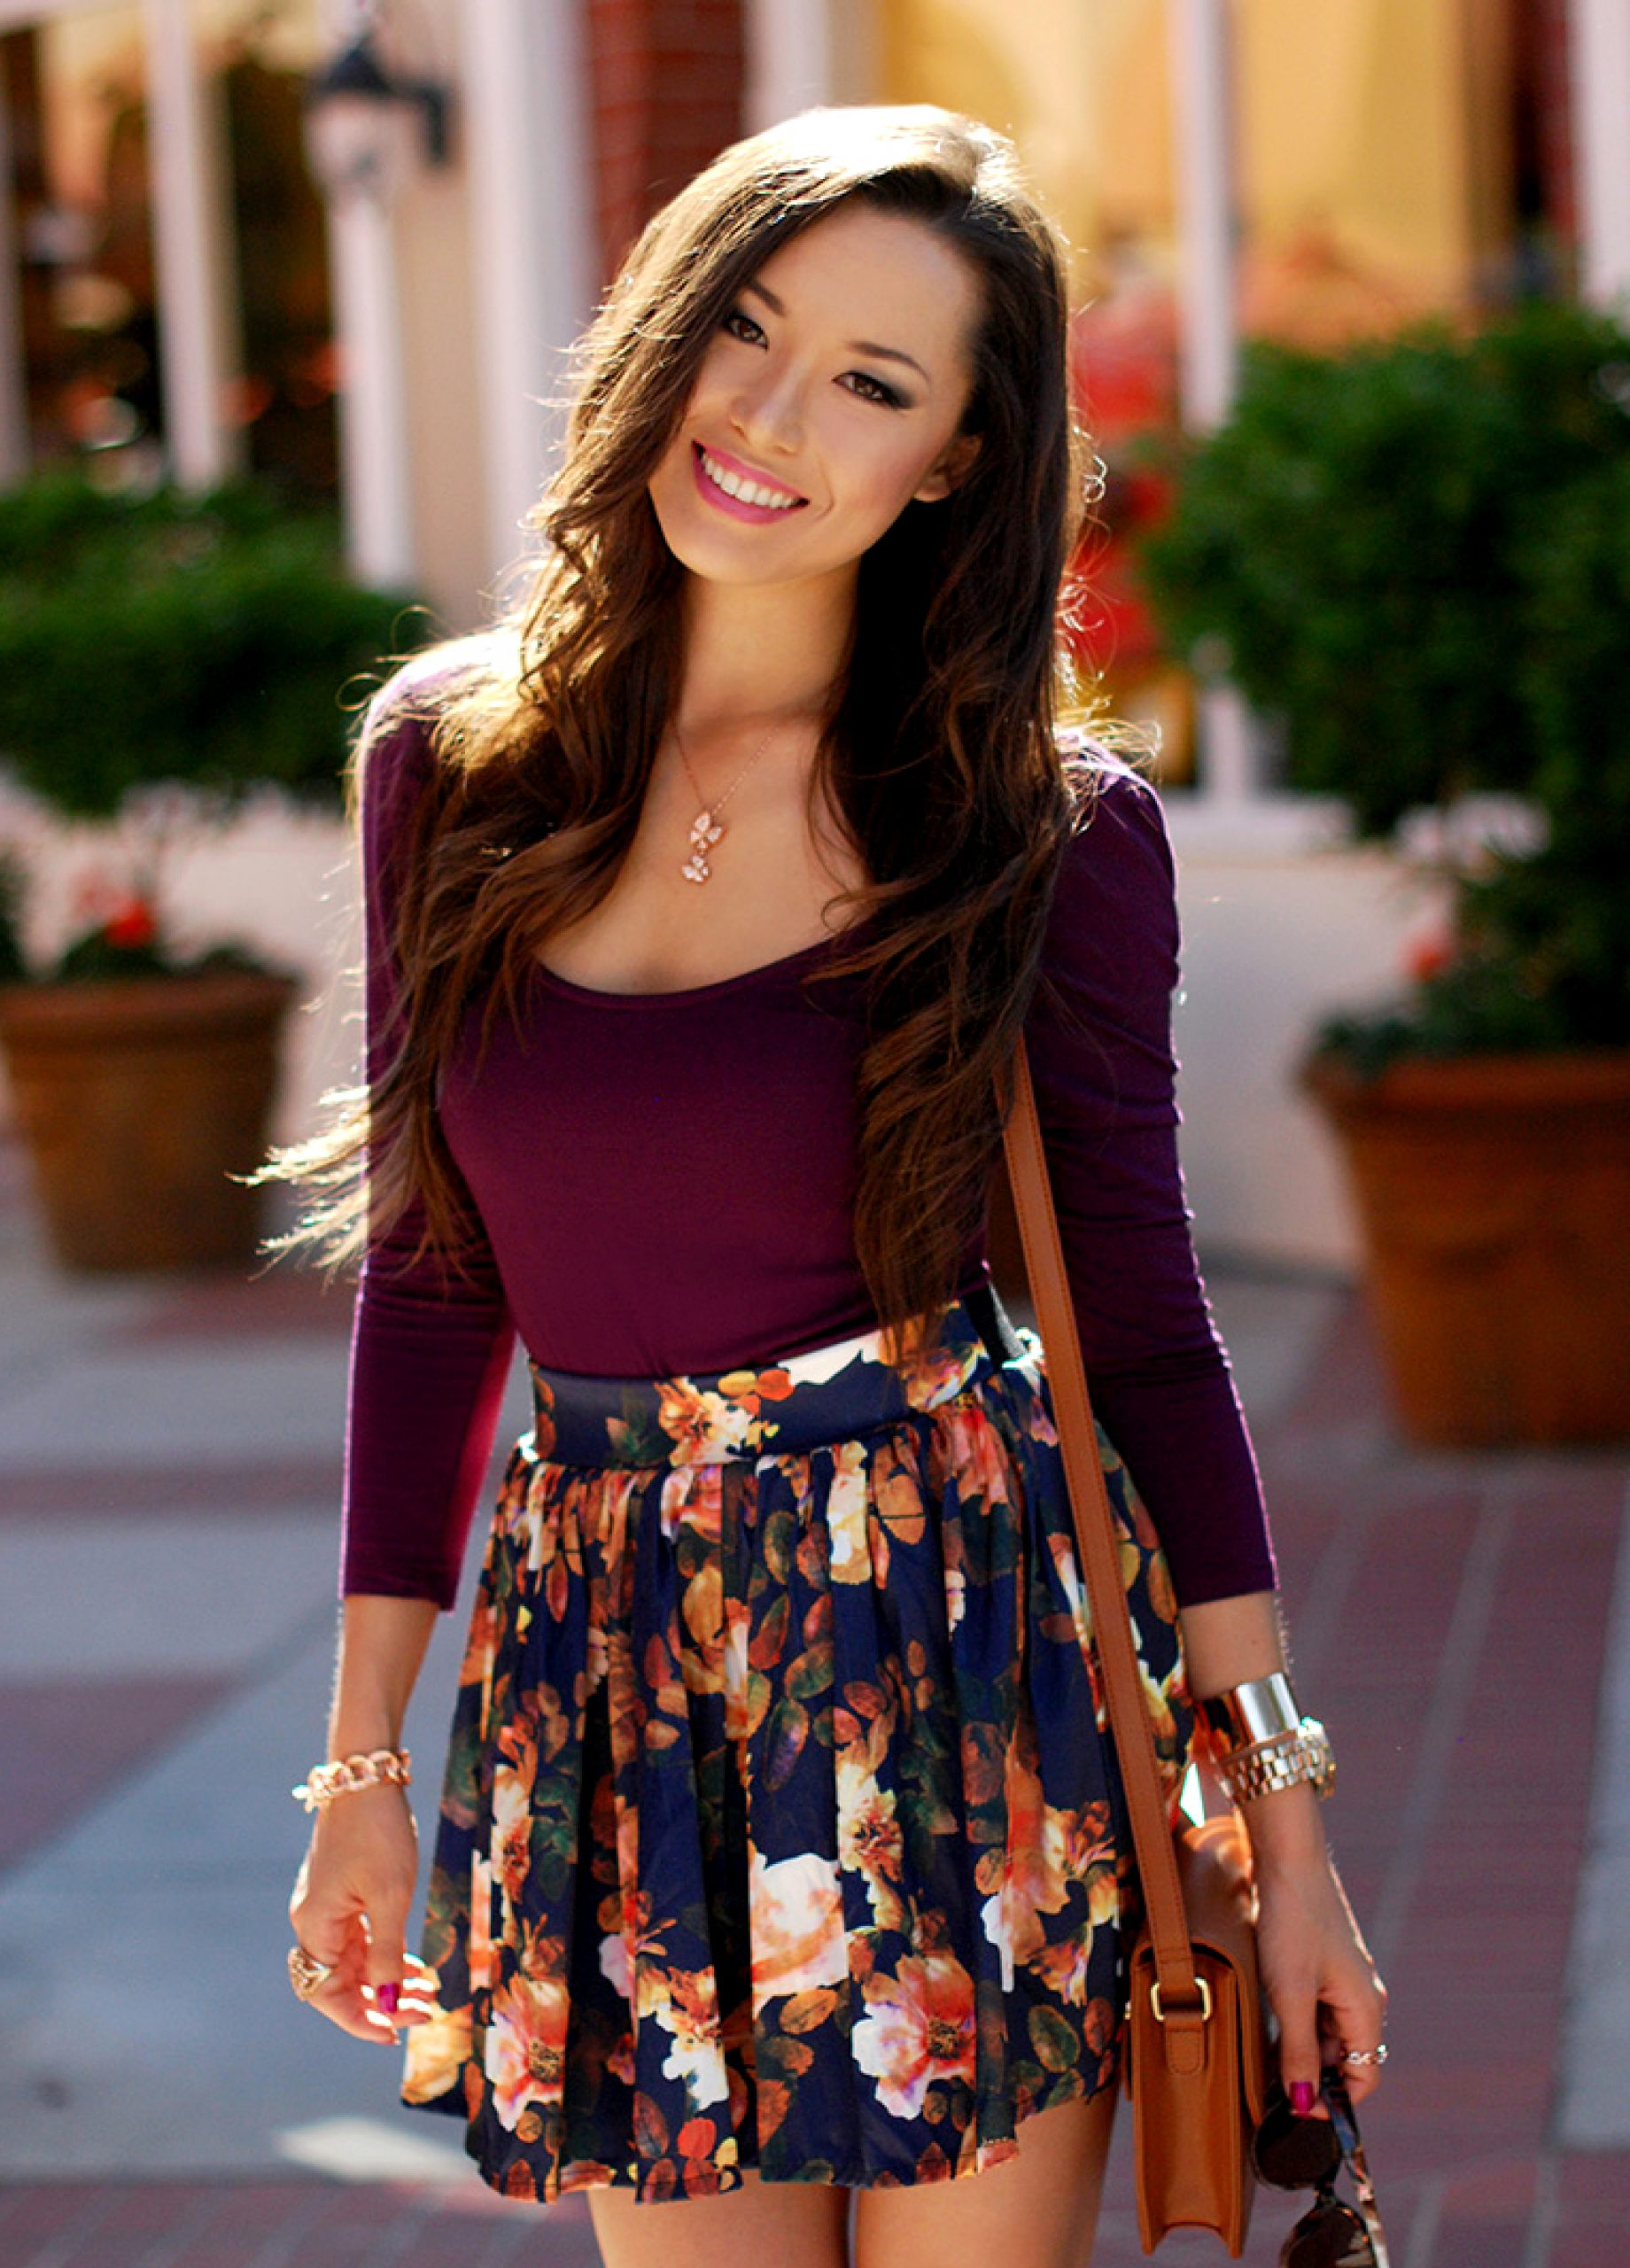 What Tops Can I Wear with Skater Skirts